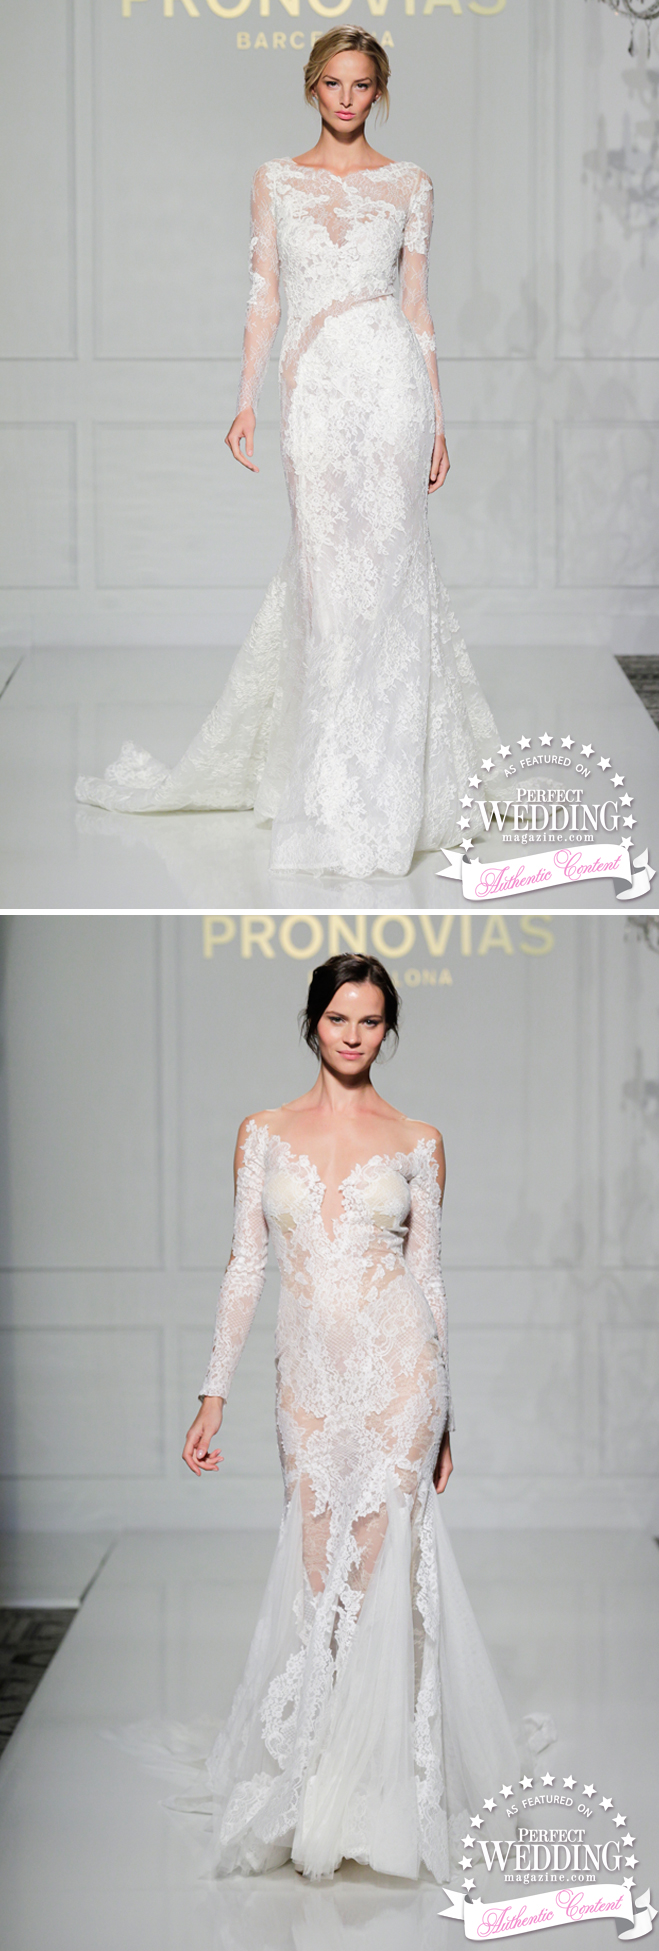 Pronovias, Atelier Pronovias, PRONOVIAS NYC FASHION SHOW, PronoviasNYCFashionShow, PronoviasItBrides, Perfect wedding Magazine Blog, Perfect Wedding magazine, 2016 Bridal collections